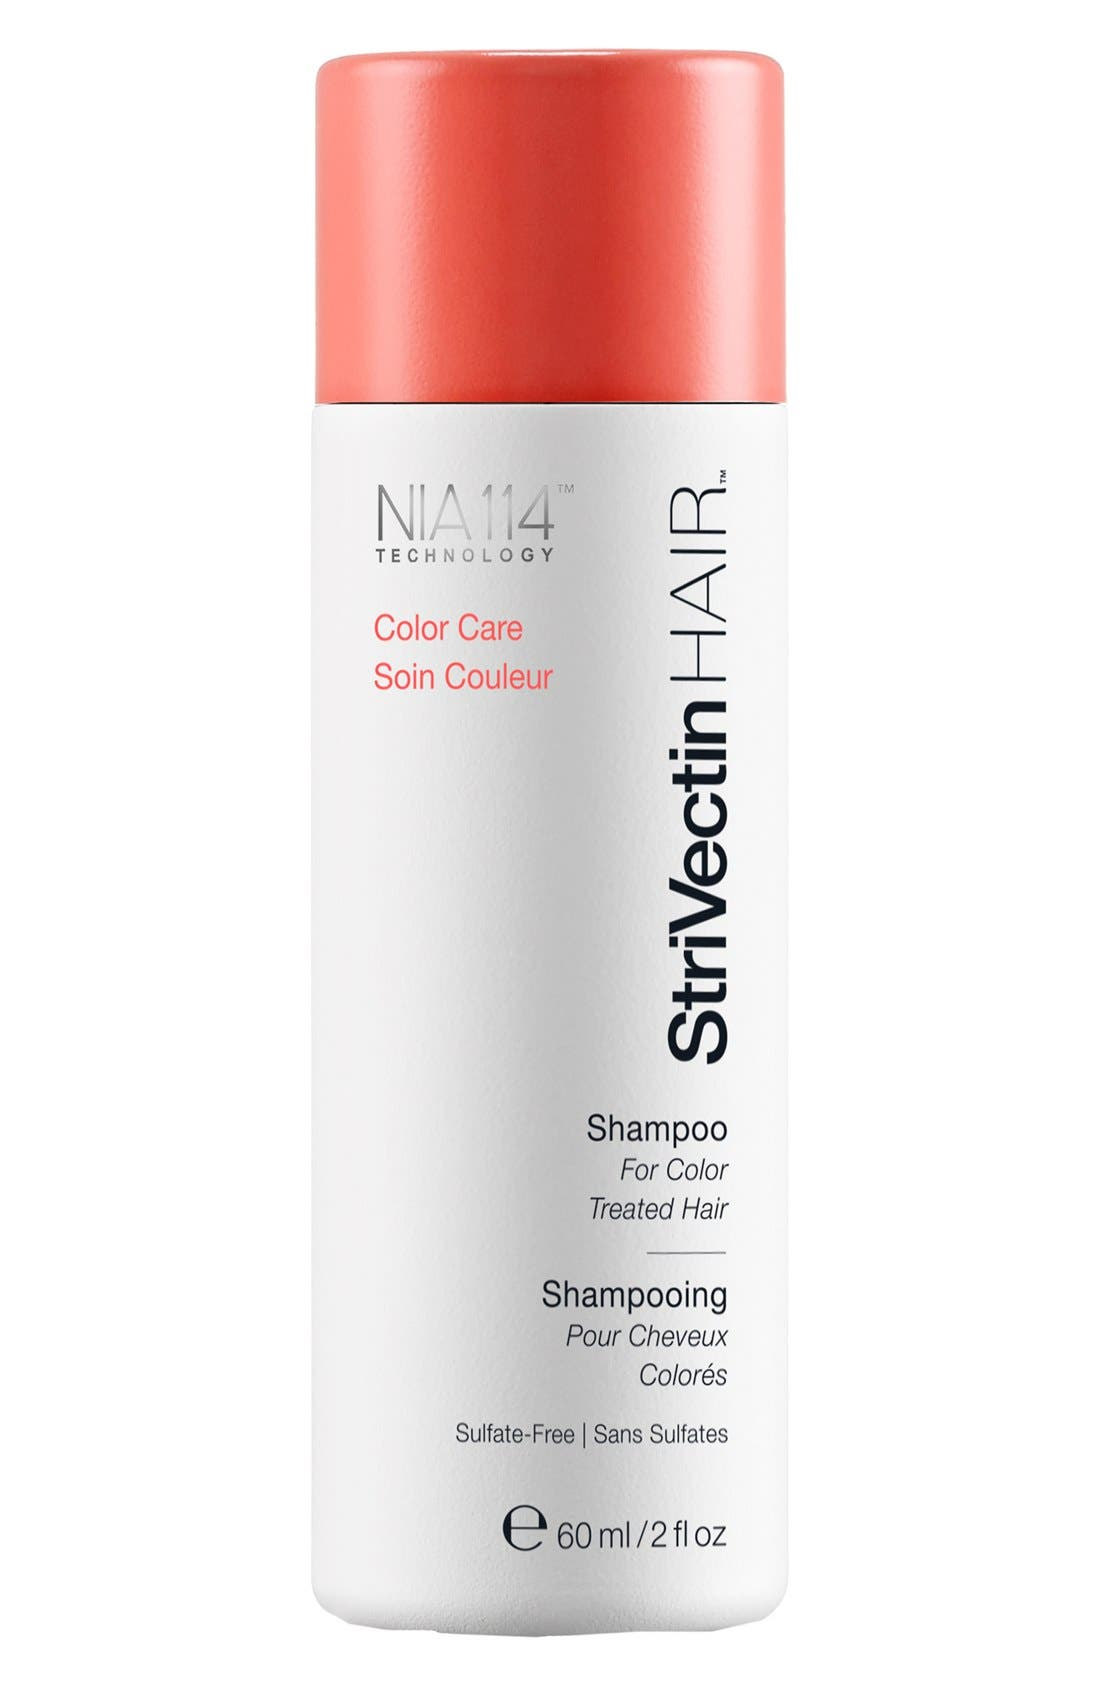 StriVectinHAIR<sup>™</sup> 'Color Care' Shampoo for Color Treated Hair,                         Main,                         color, 000